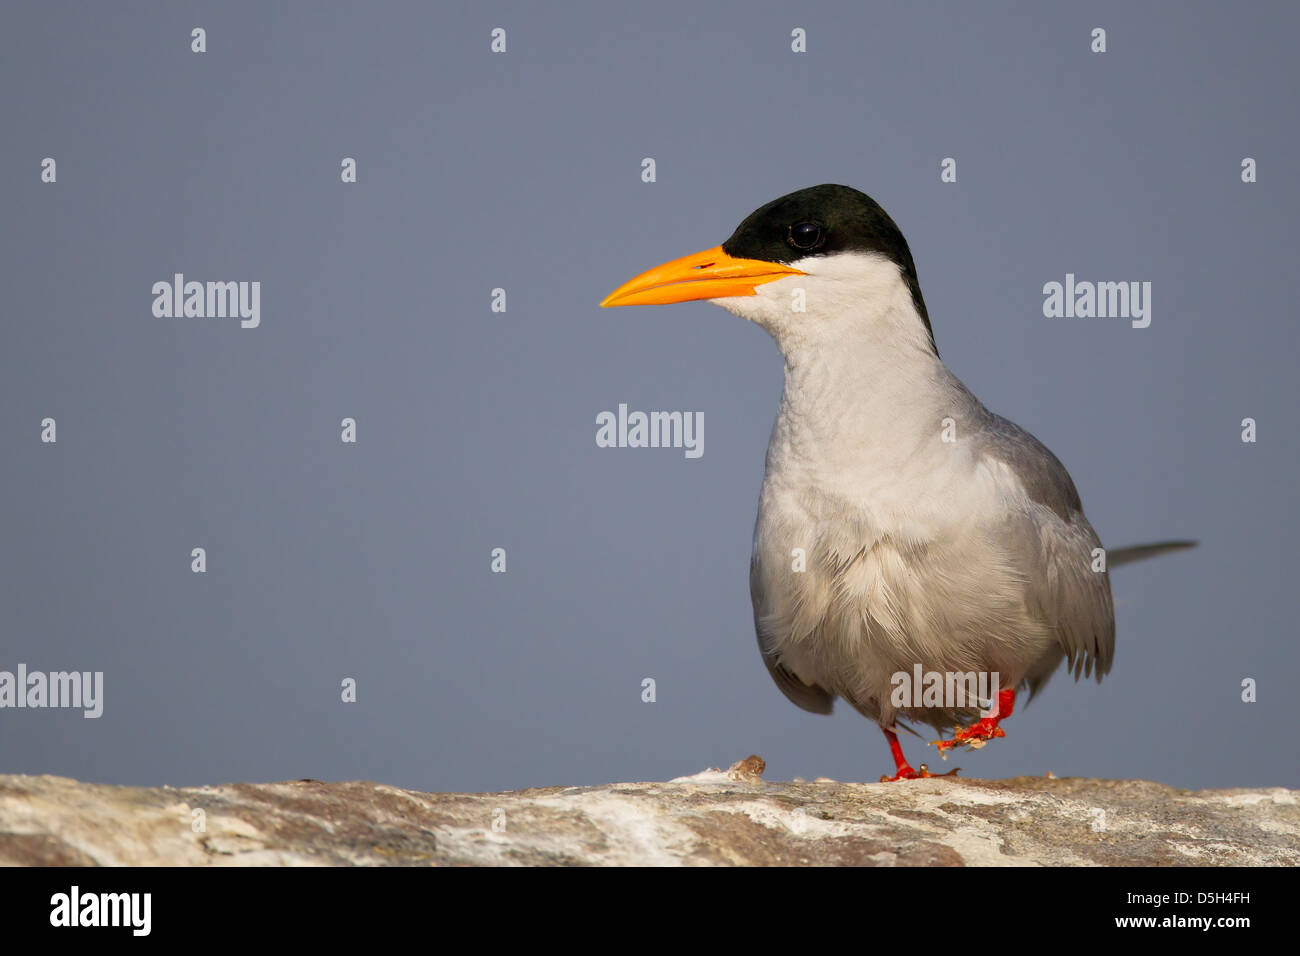 river tern walking on a rock stained white with bird droppings with sky as background - Stock Image